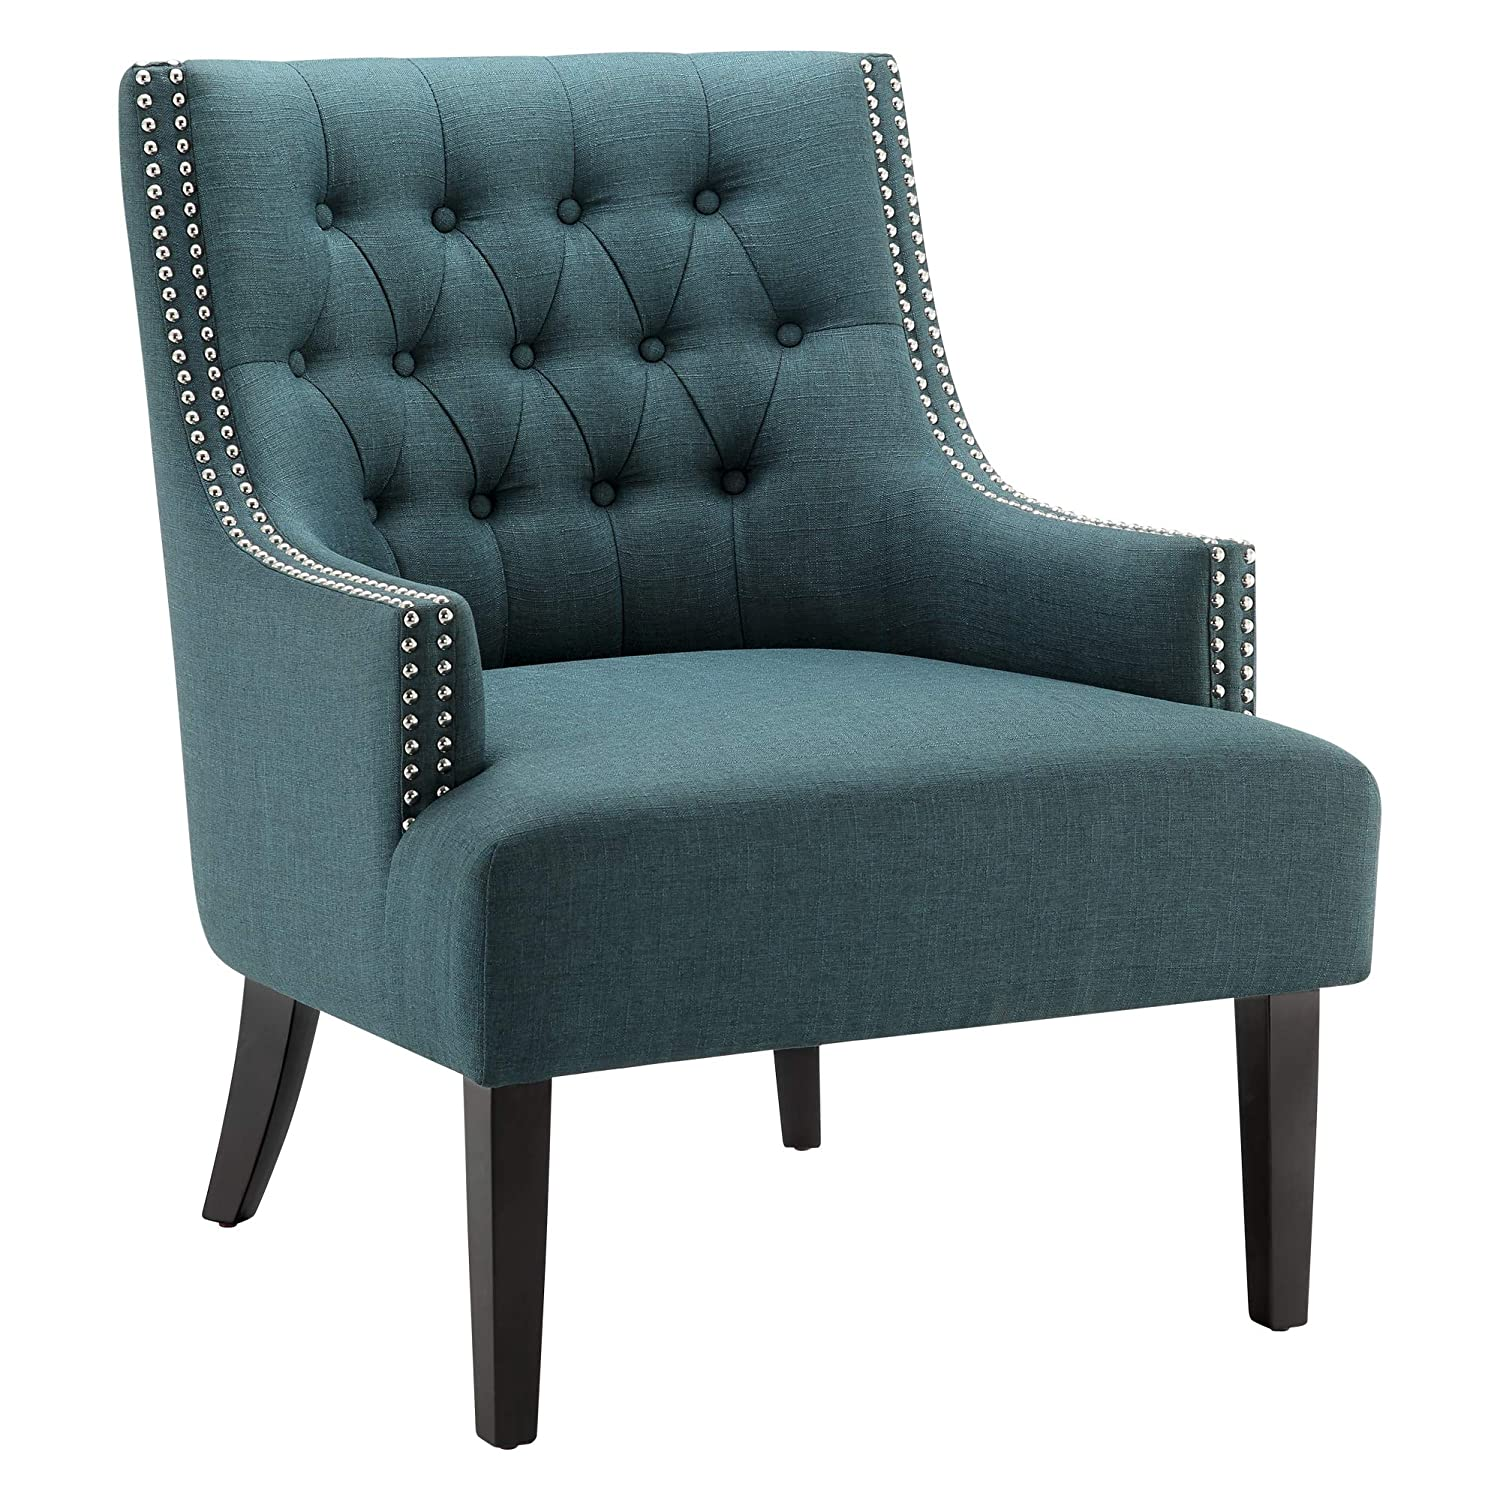 Ball Cast Tufted Fabric Accent Chair, Indigo